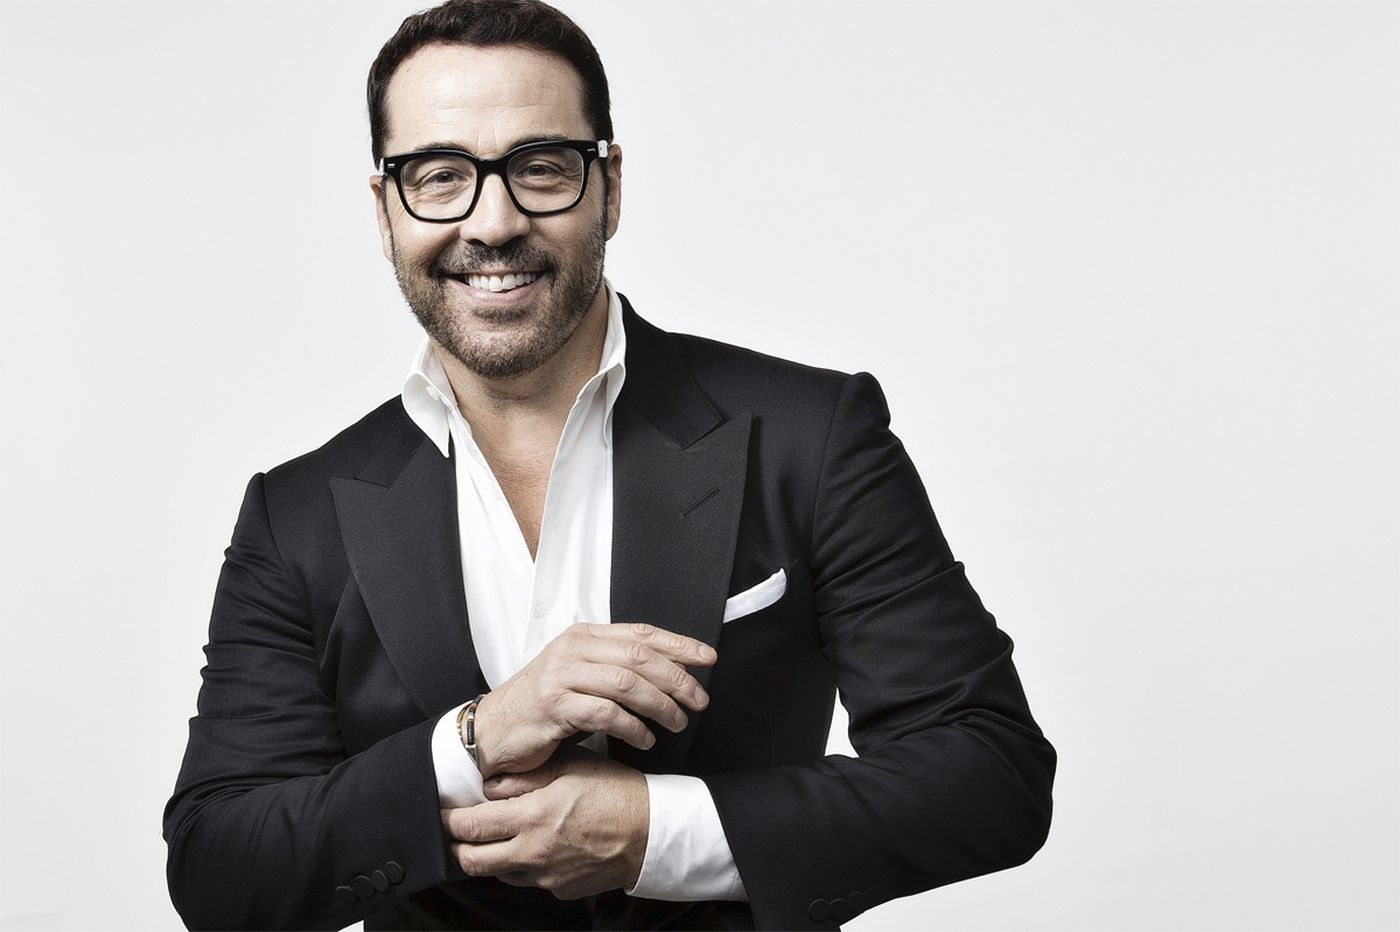 Philly comedians to Punch Line, Live Nation: Cancel Jeremy Piven's show